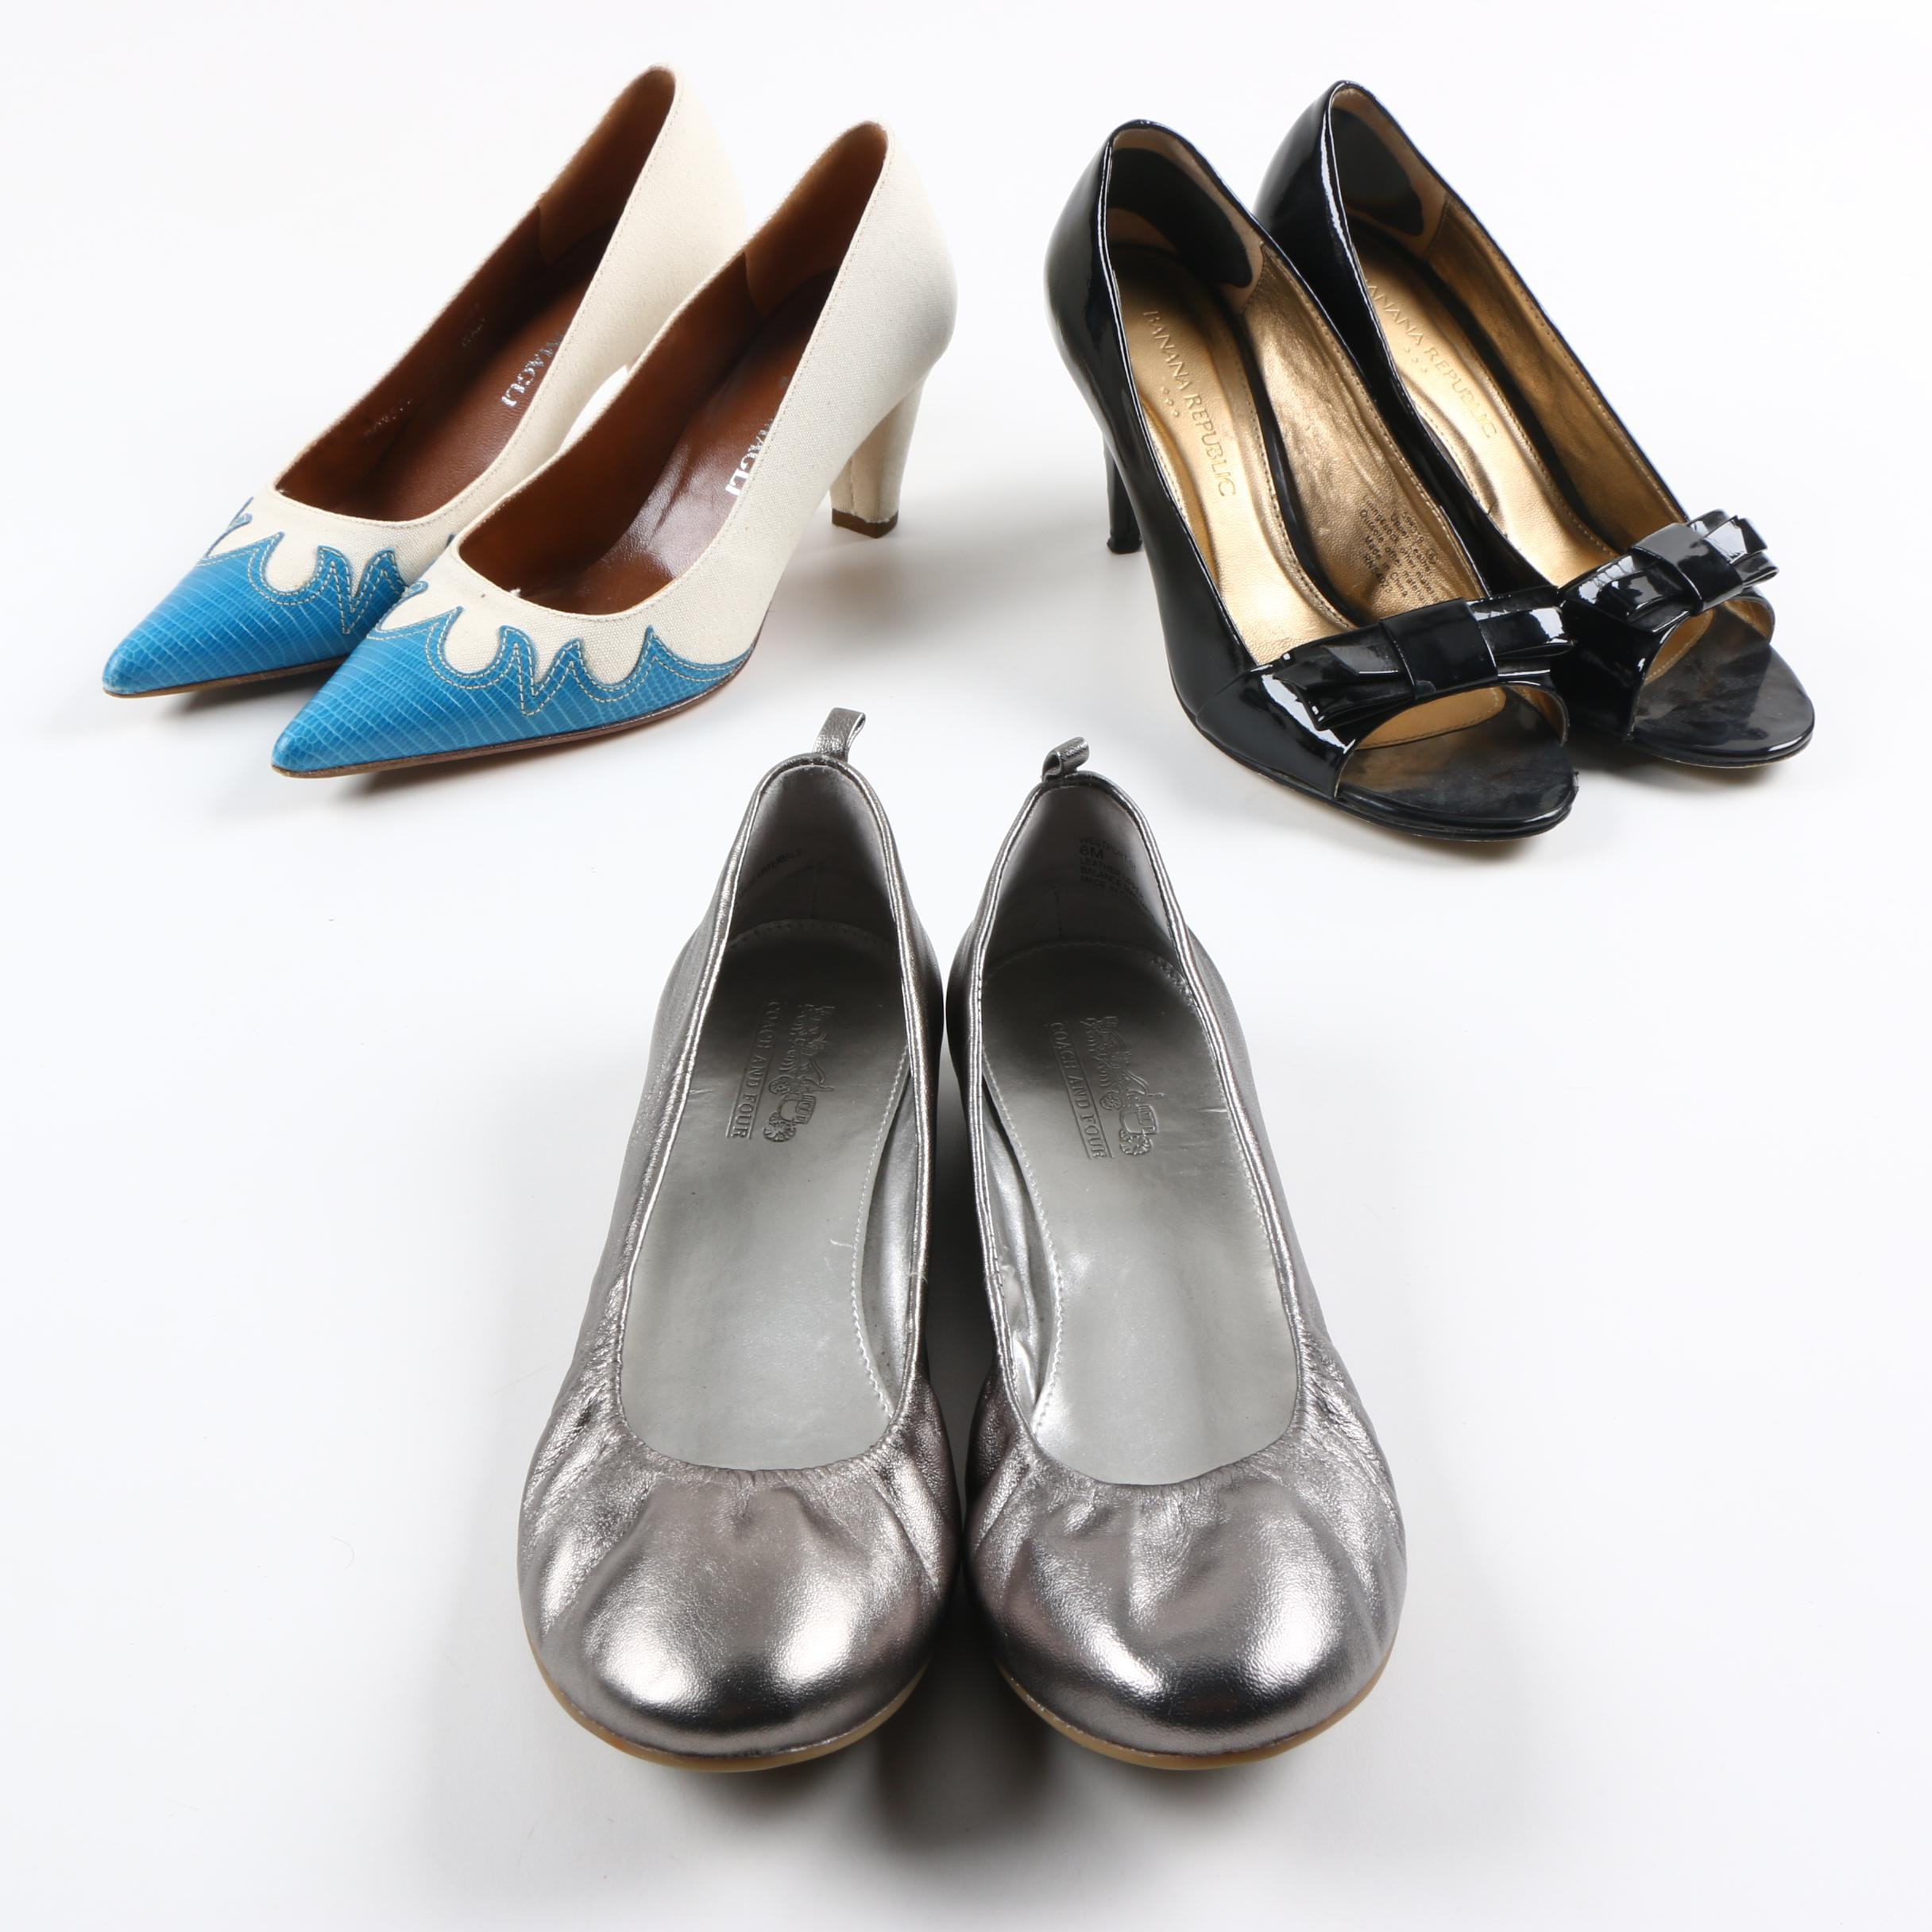 Women's Heels and Flats Including Bruno Magli